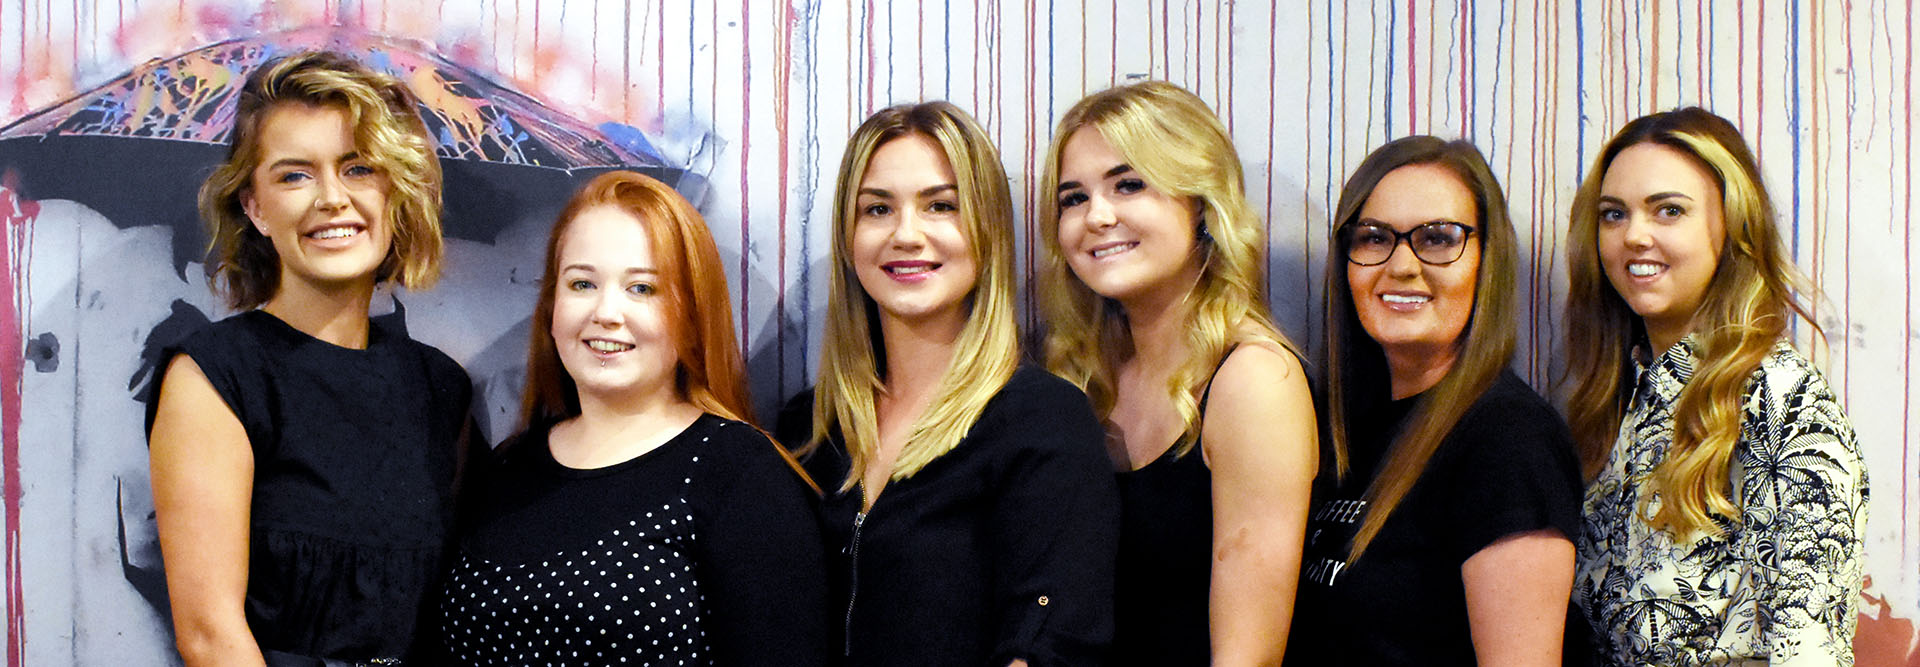 image of the house of style team